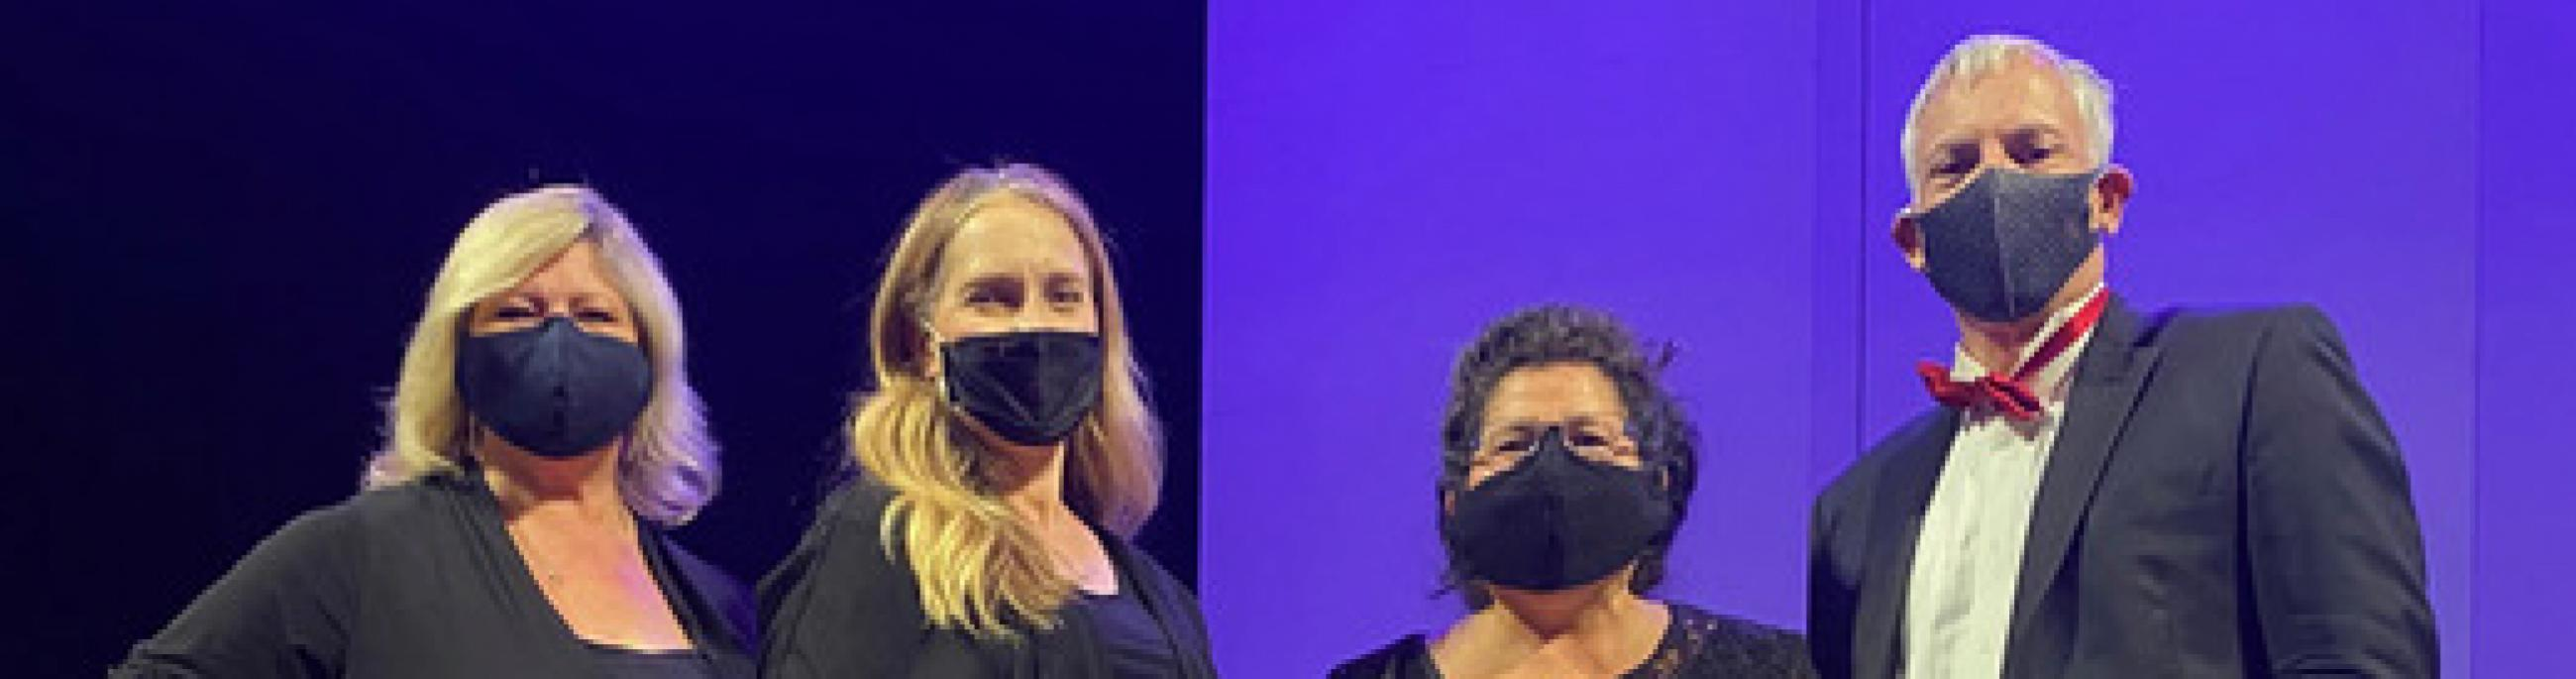 Four musicians, dressed in formal wear and masks, pose in front of a purple backdrop.